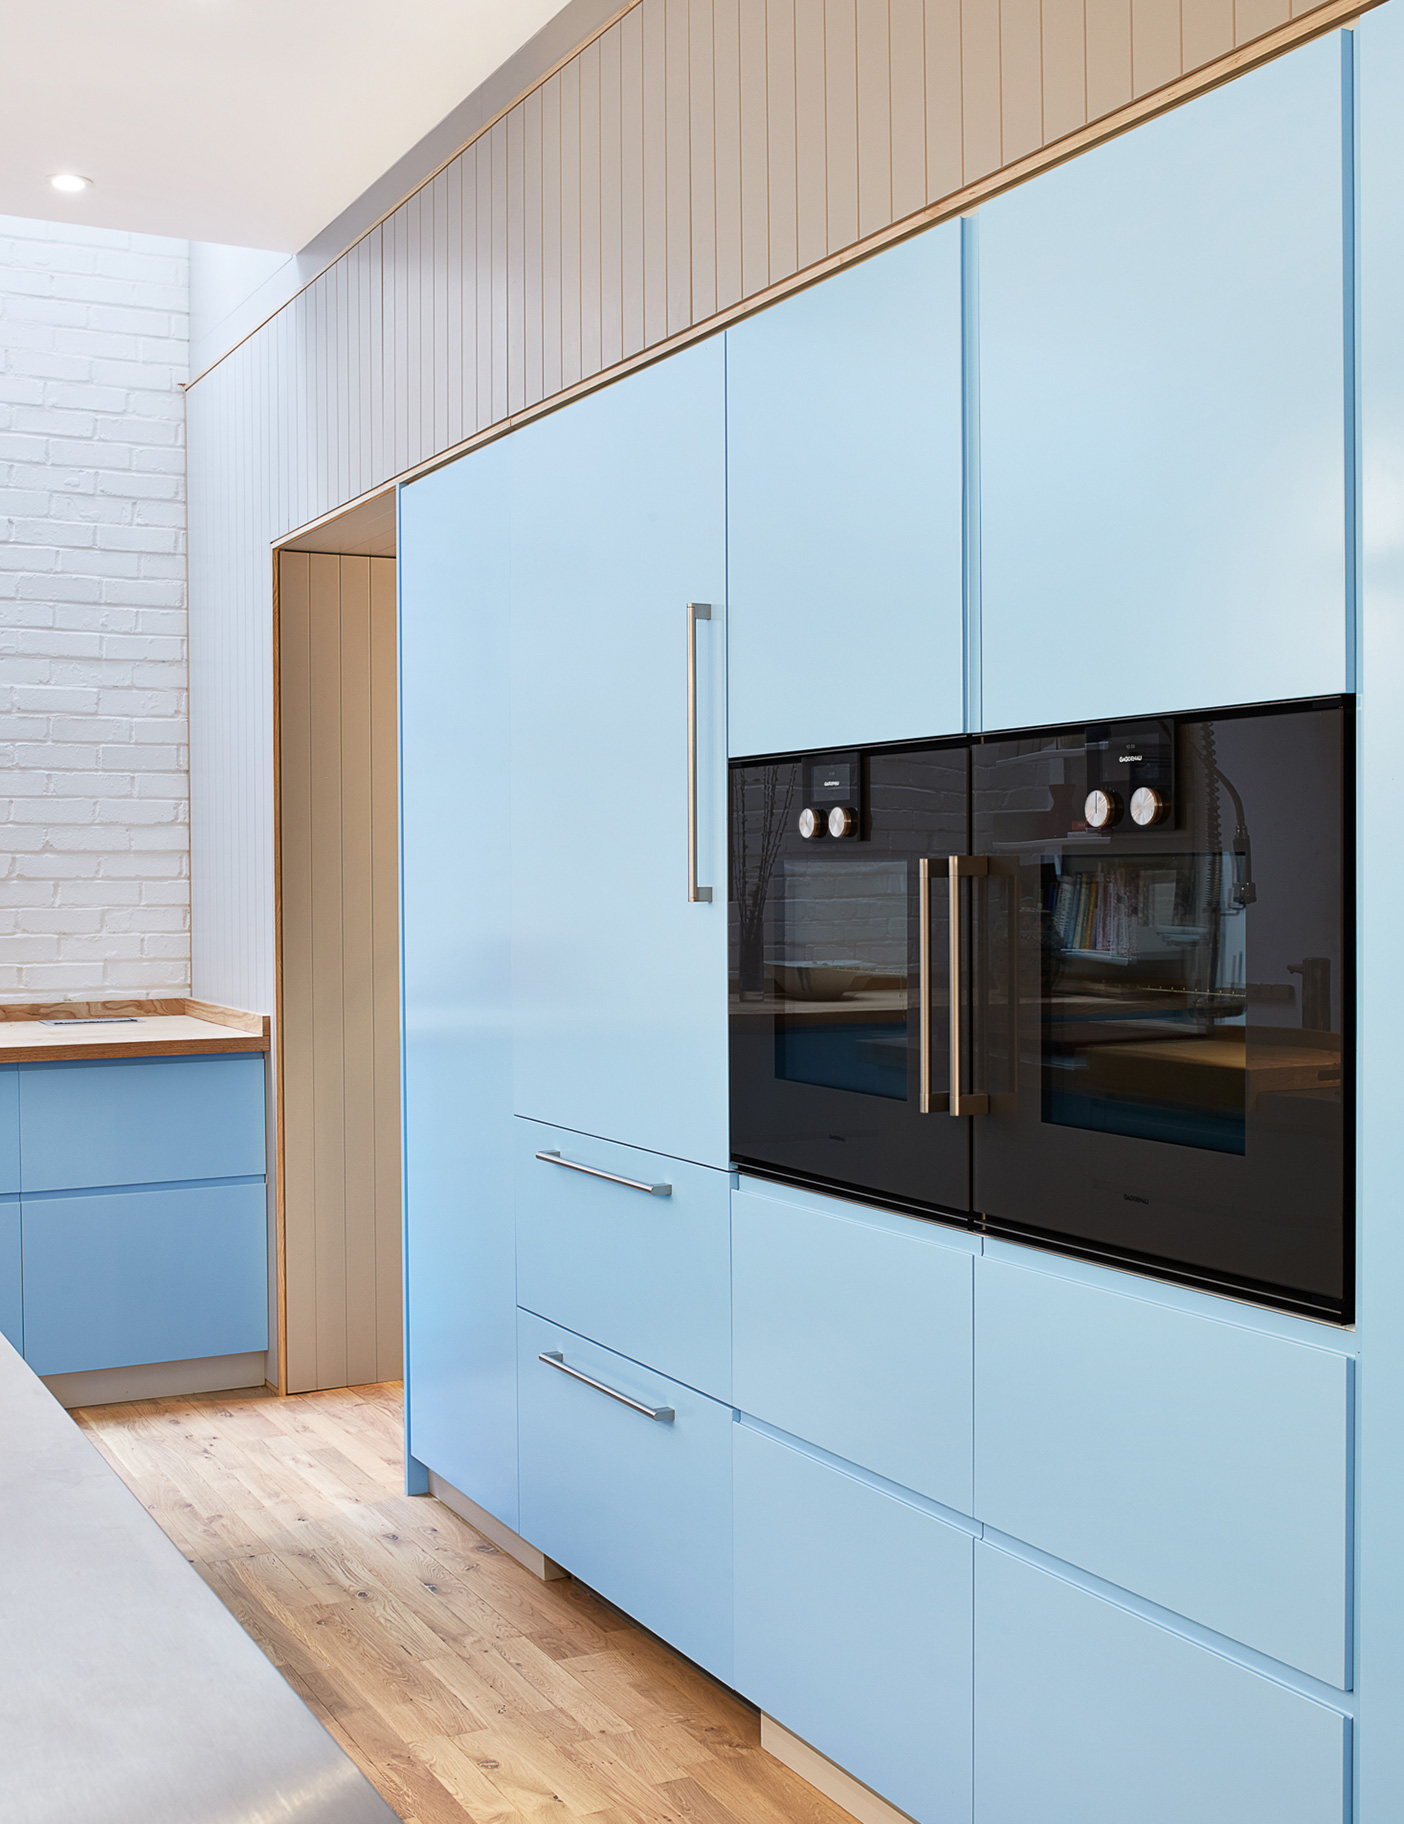 Aldworth James & Bond | Cupboard detail in Bloomsbury Kitchen project